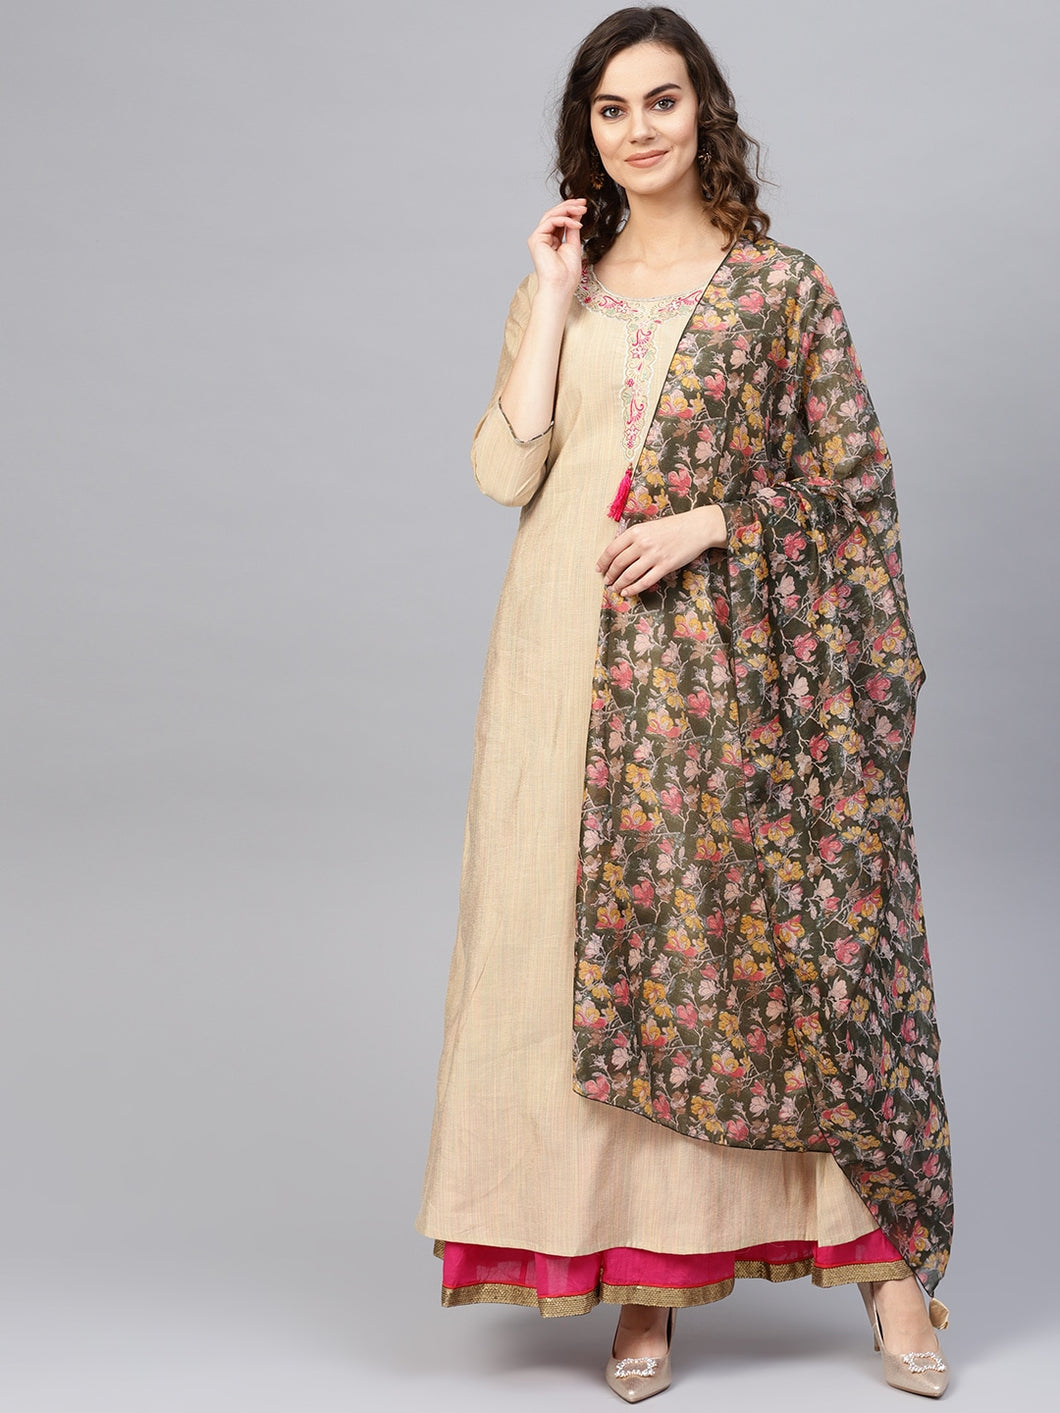 Yufta Women Beige Self-Striped A-Line Kurta With Dupatta